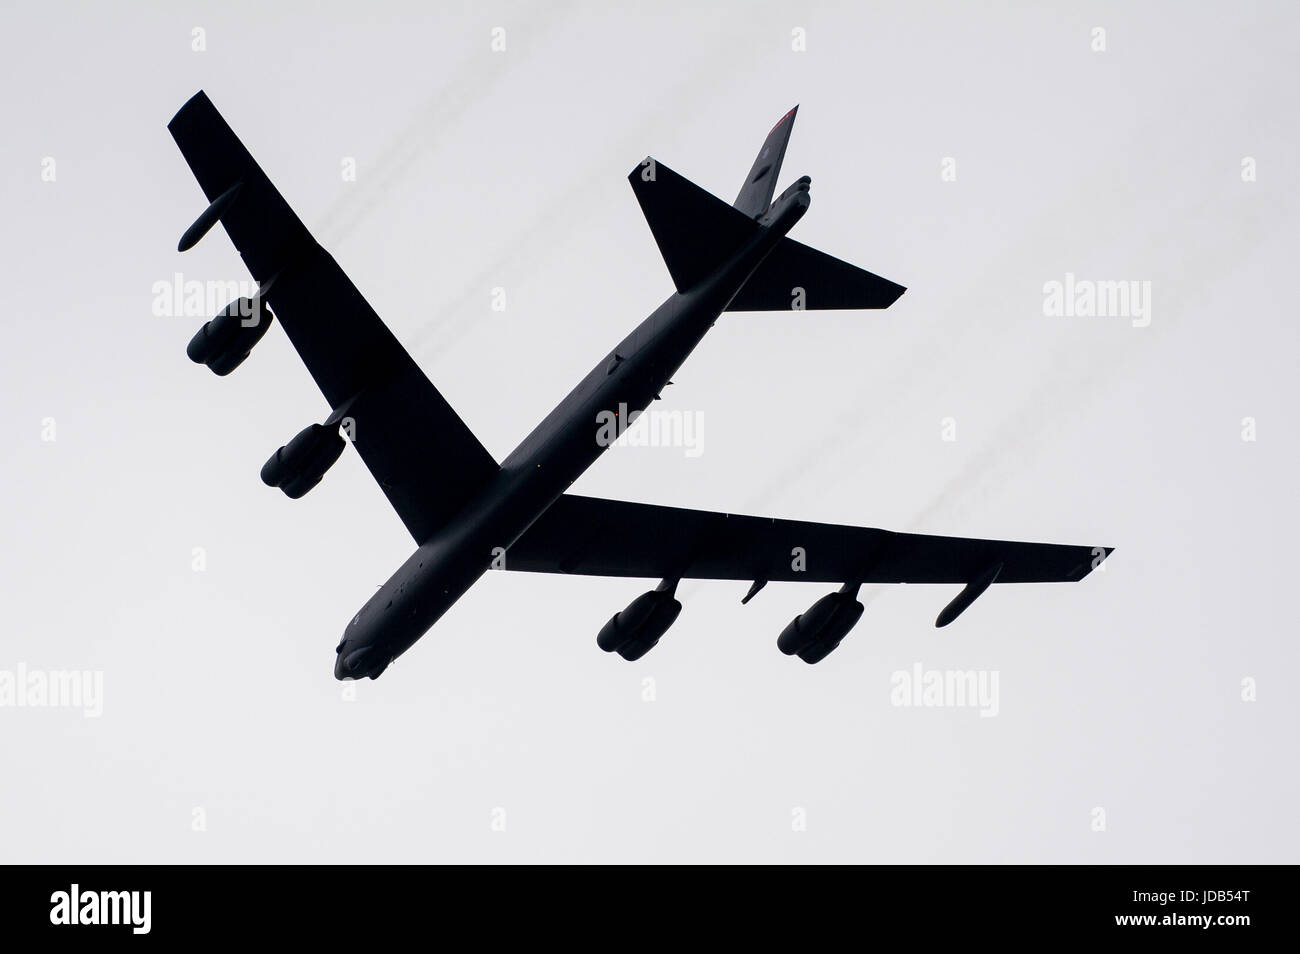 An American long-range strategic bomber Boeing B-52 Stratofortress during the 45th edition of Exercise BALTIC OPERATIONS  BALTOPS 2017 in Ustka, Polan Stock Photo